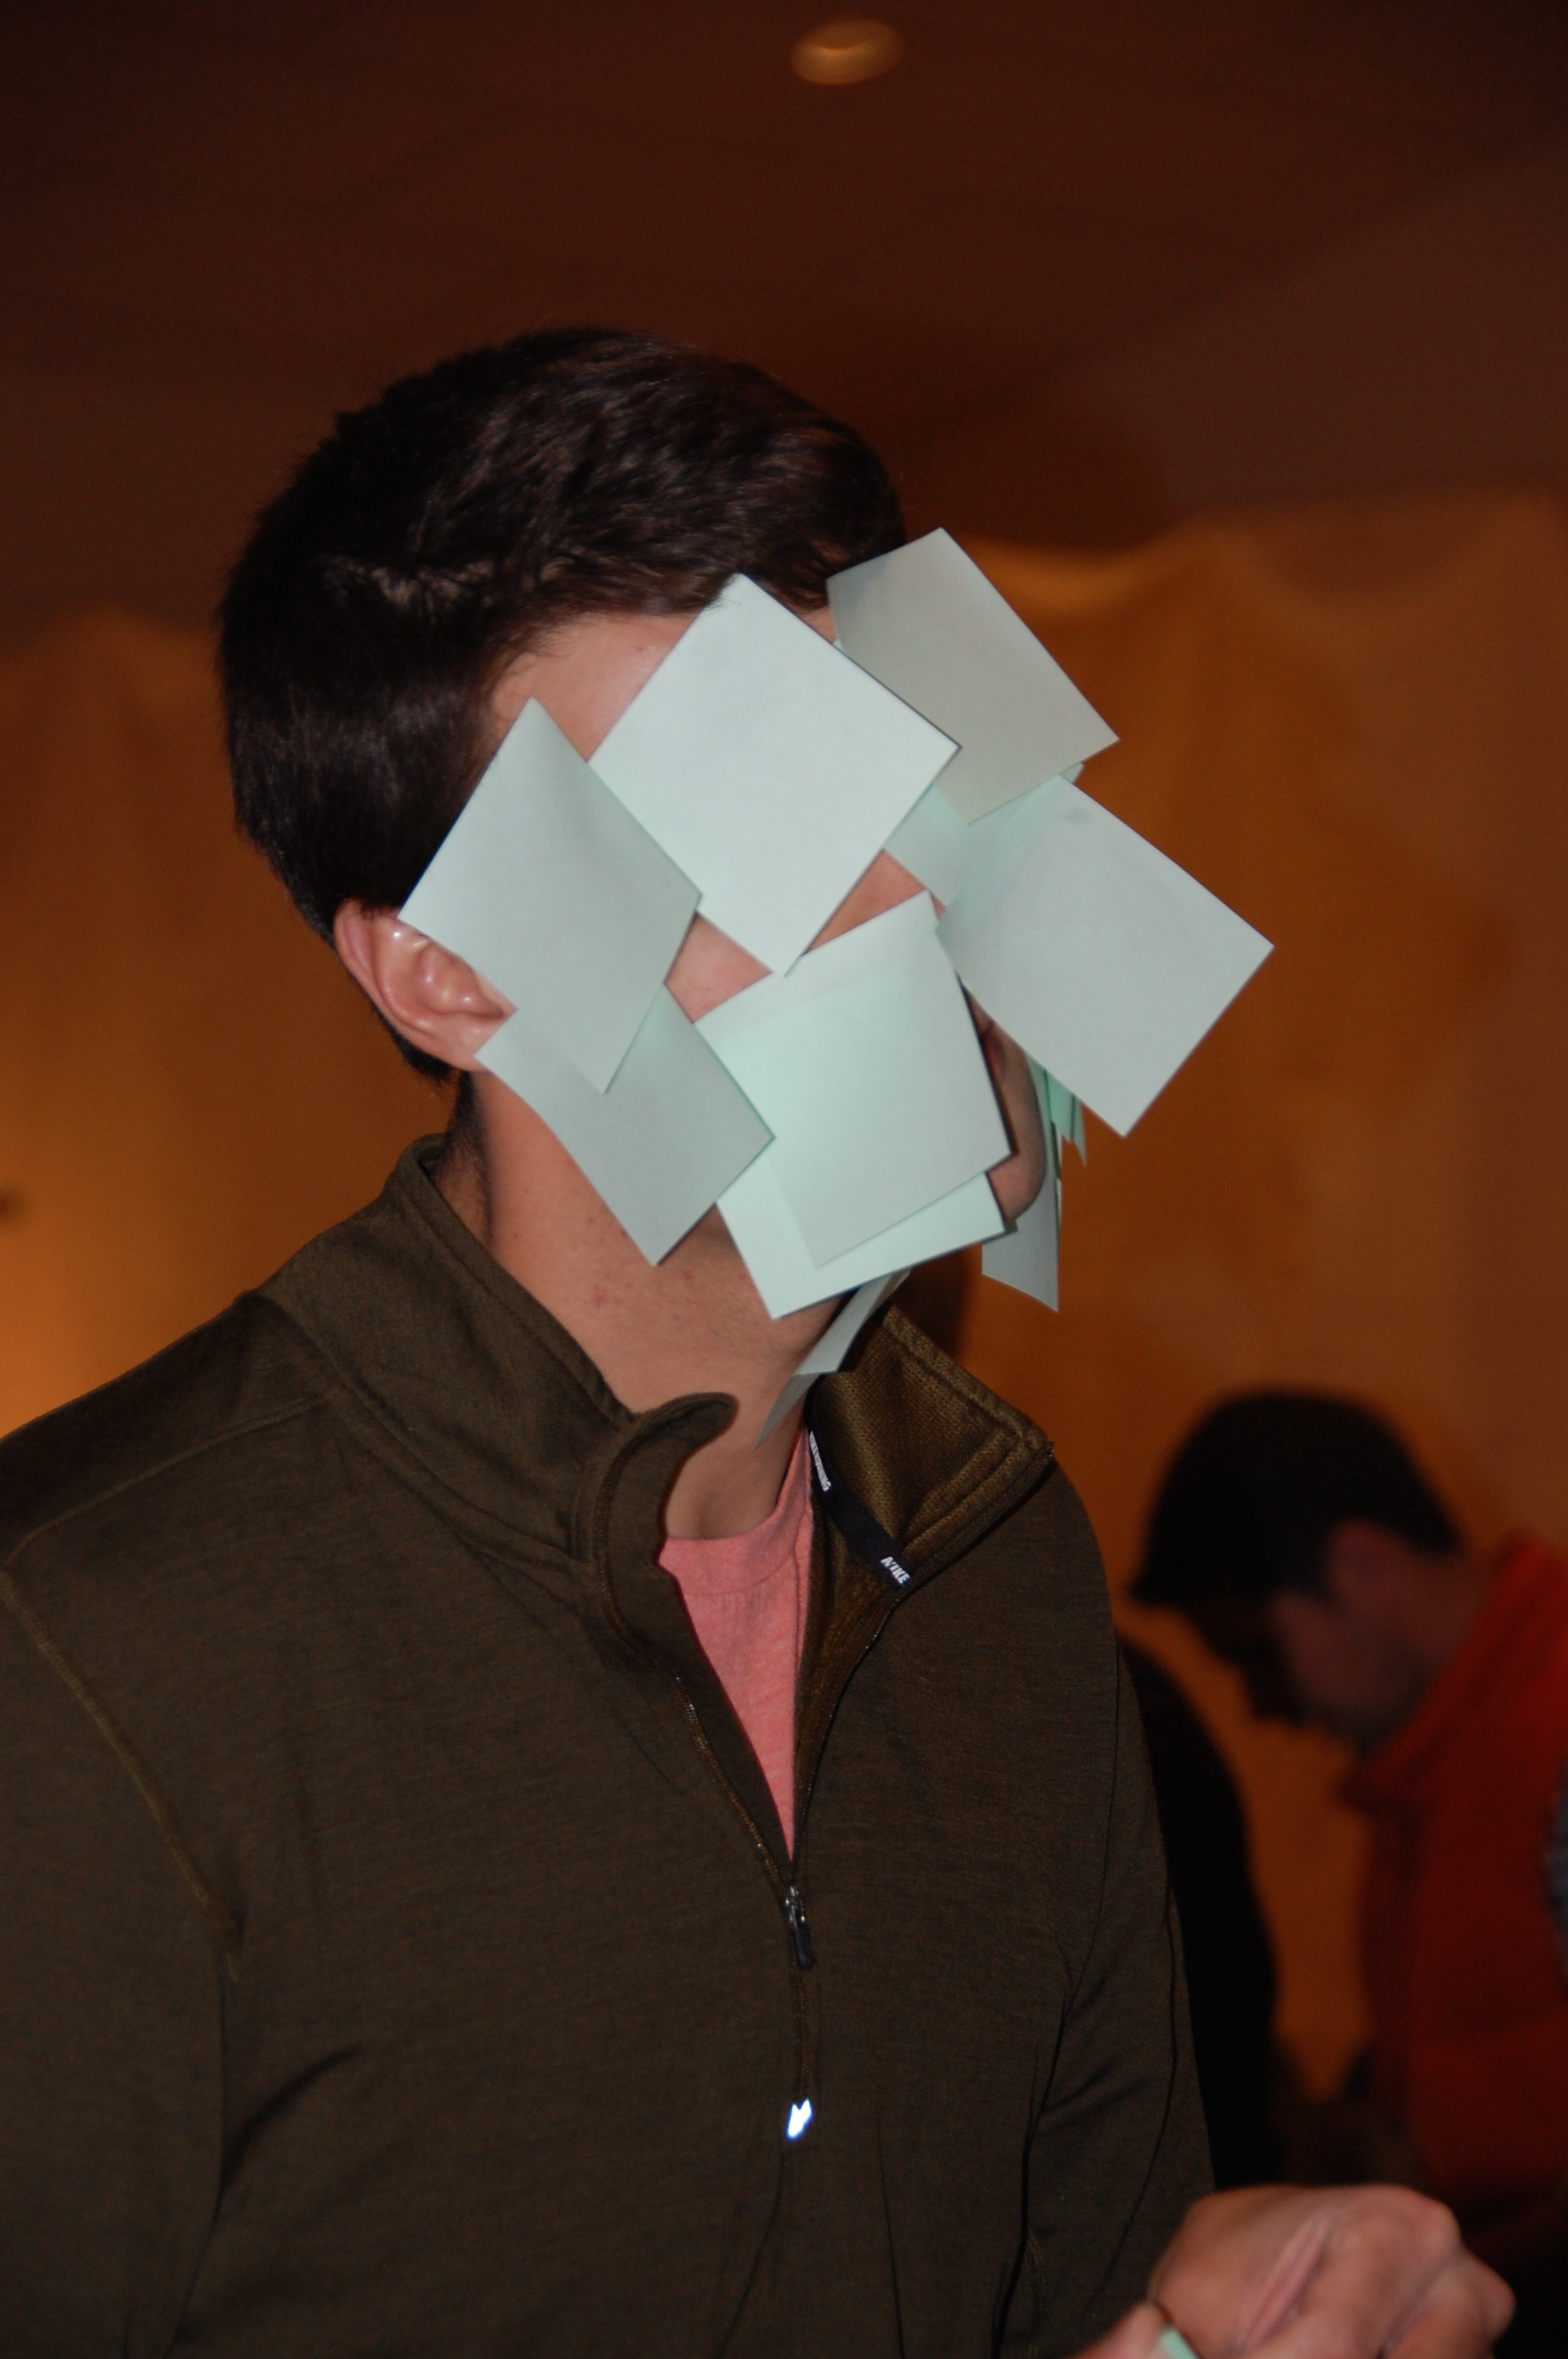 How many Post-It notes can you get to stick on your face?